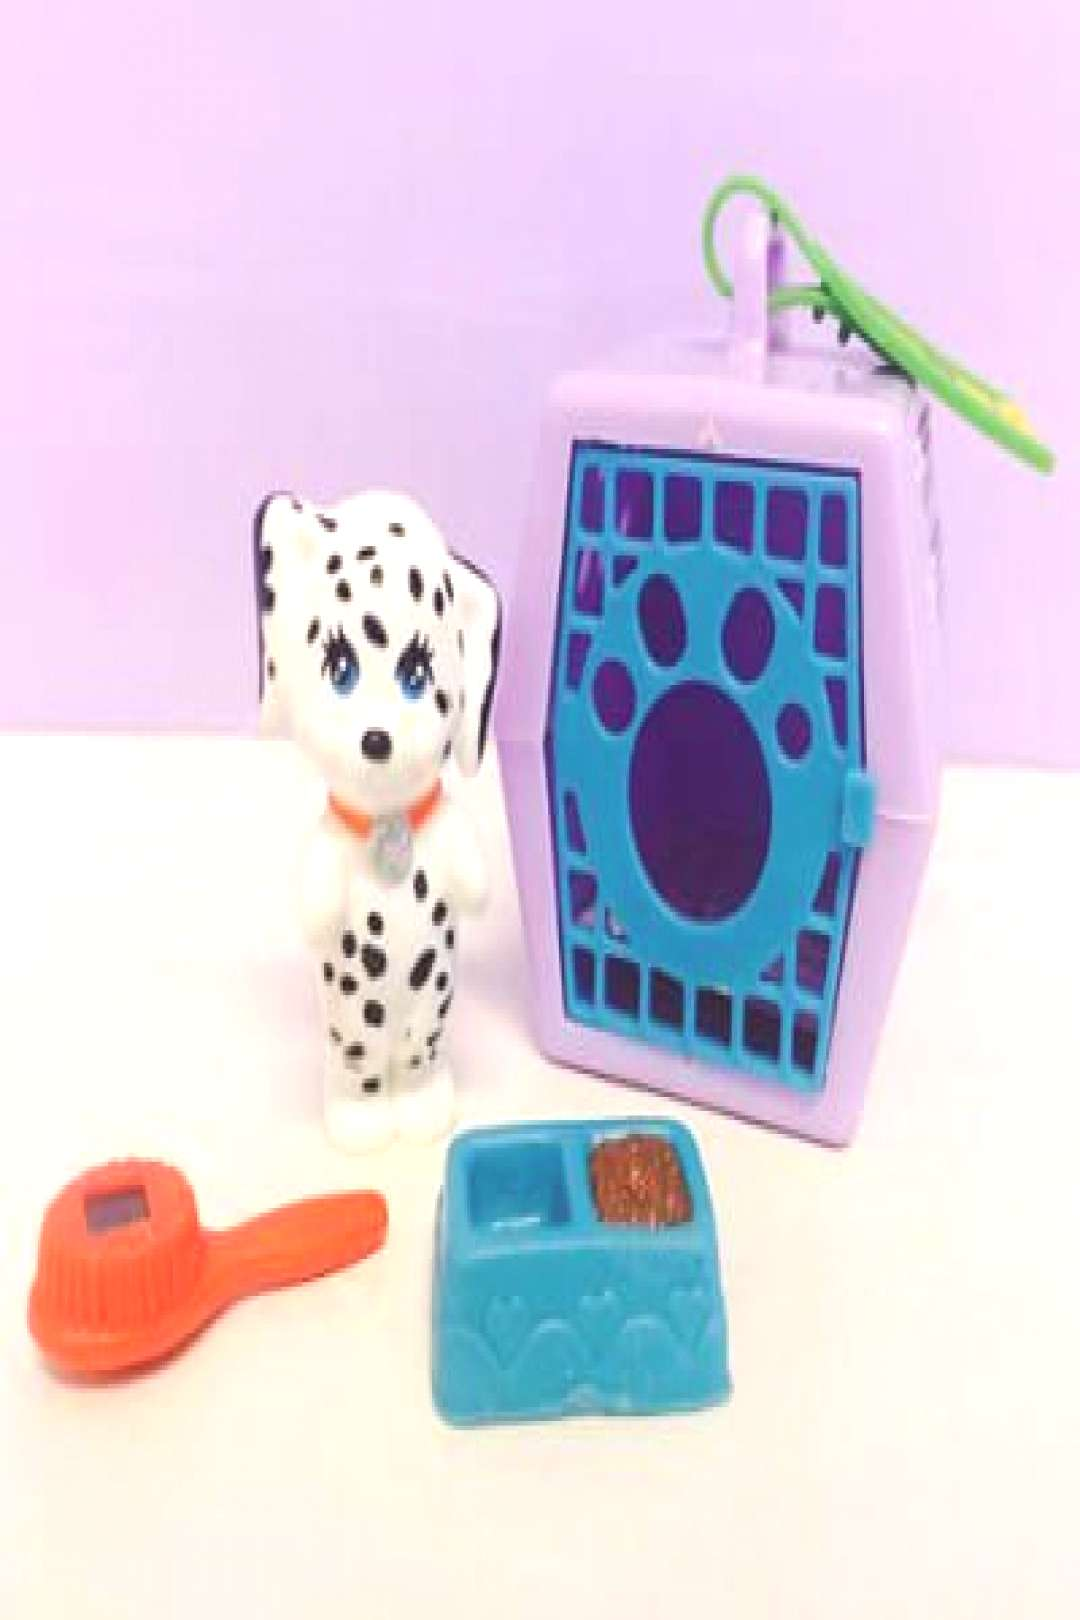 20 Toys 90s Girls Have Legit Not Seen Since Childhood#90s